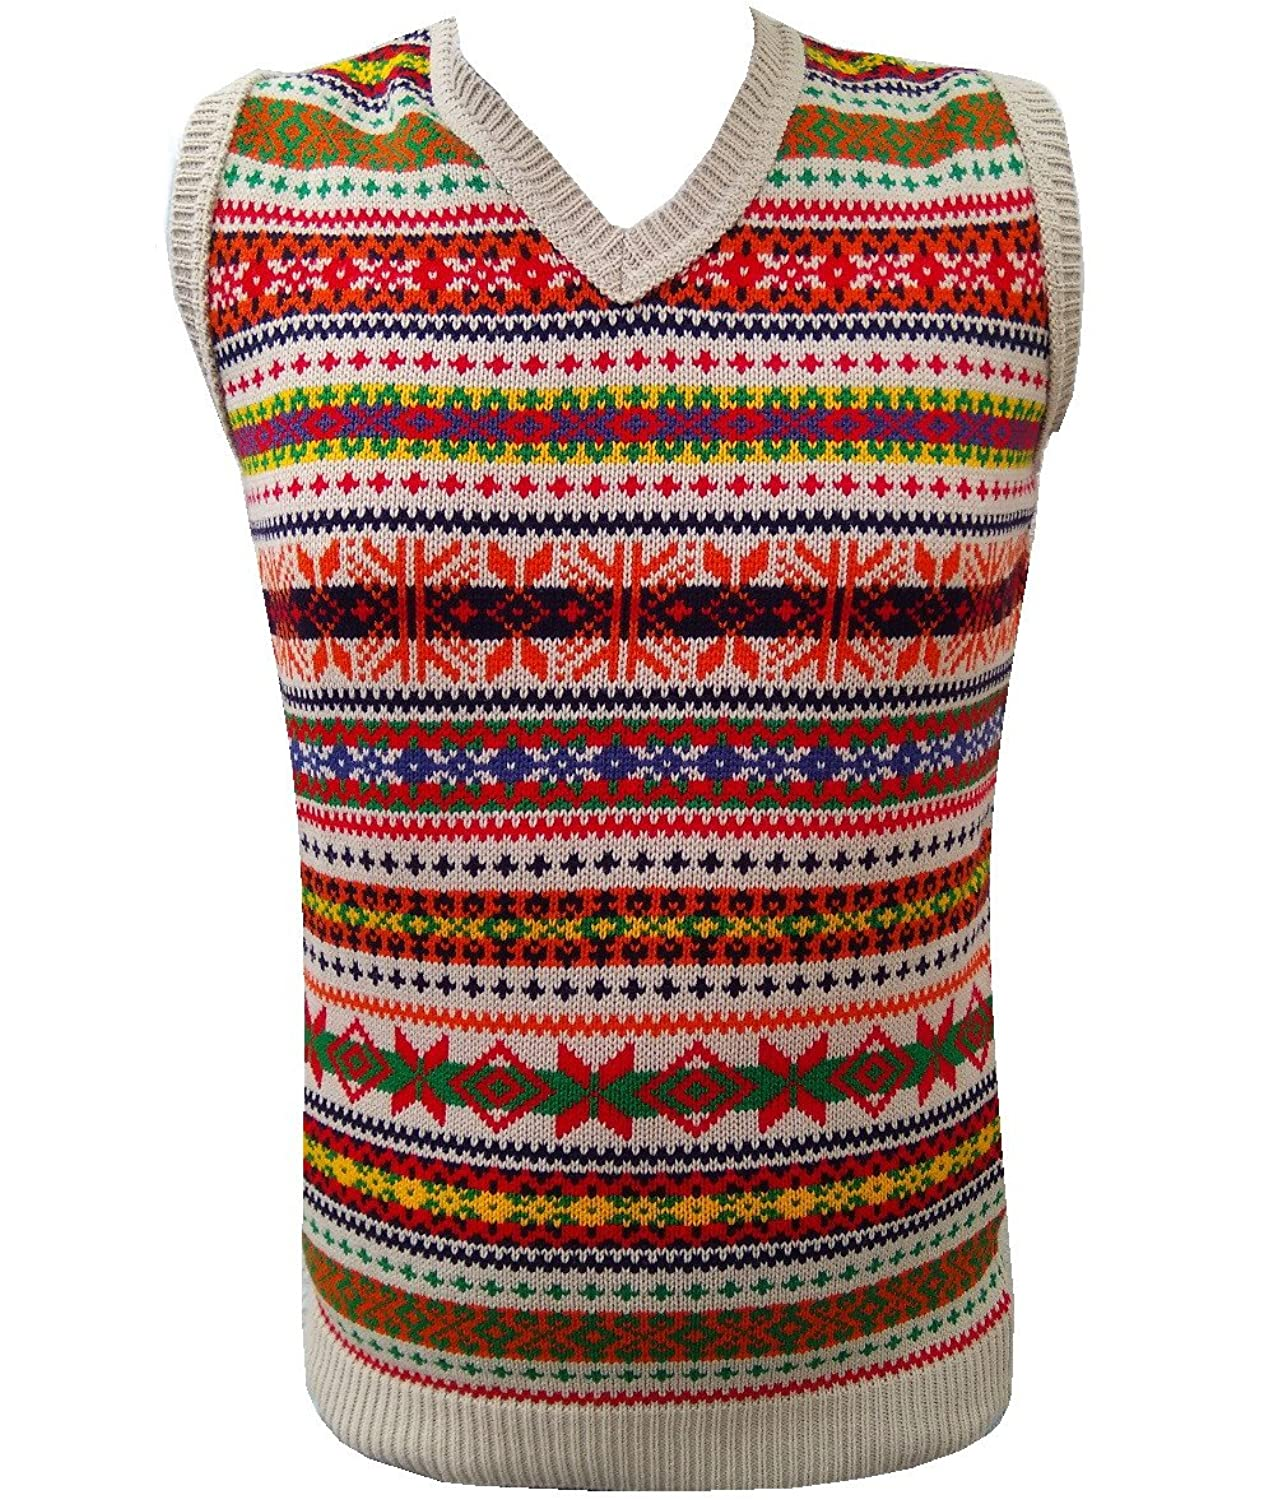 1920s Men's Fashion UK | Peaky Blinders Clothing London Knitwear Gallery Retro Vintage Knitwear Tanktop Sleeveless Golf Sweater £19.99 AT vintagedancer.com